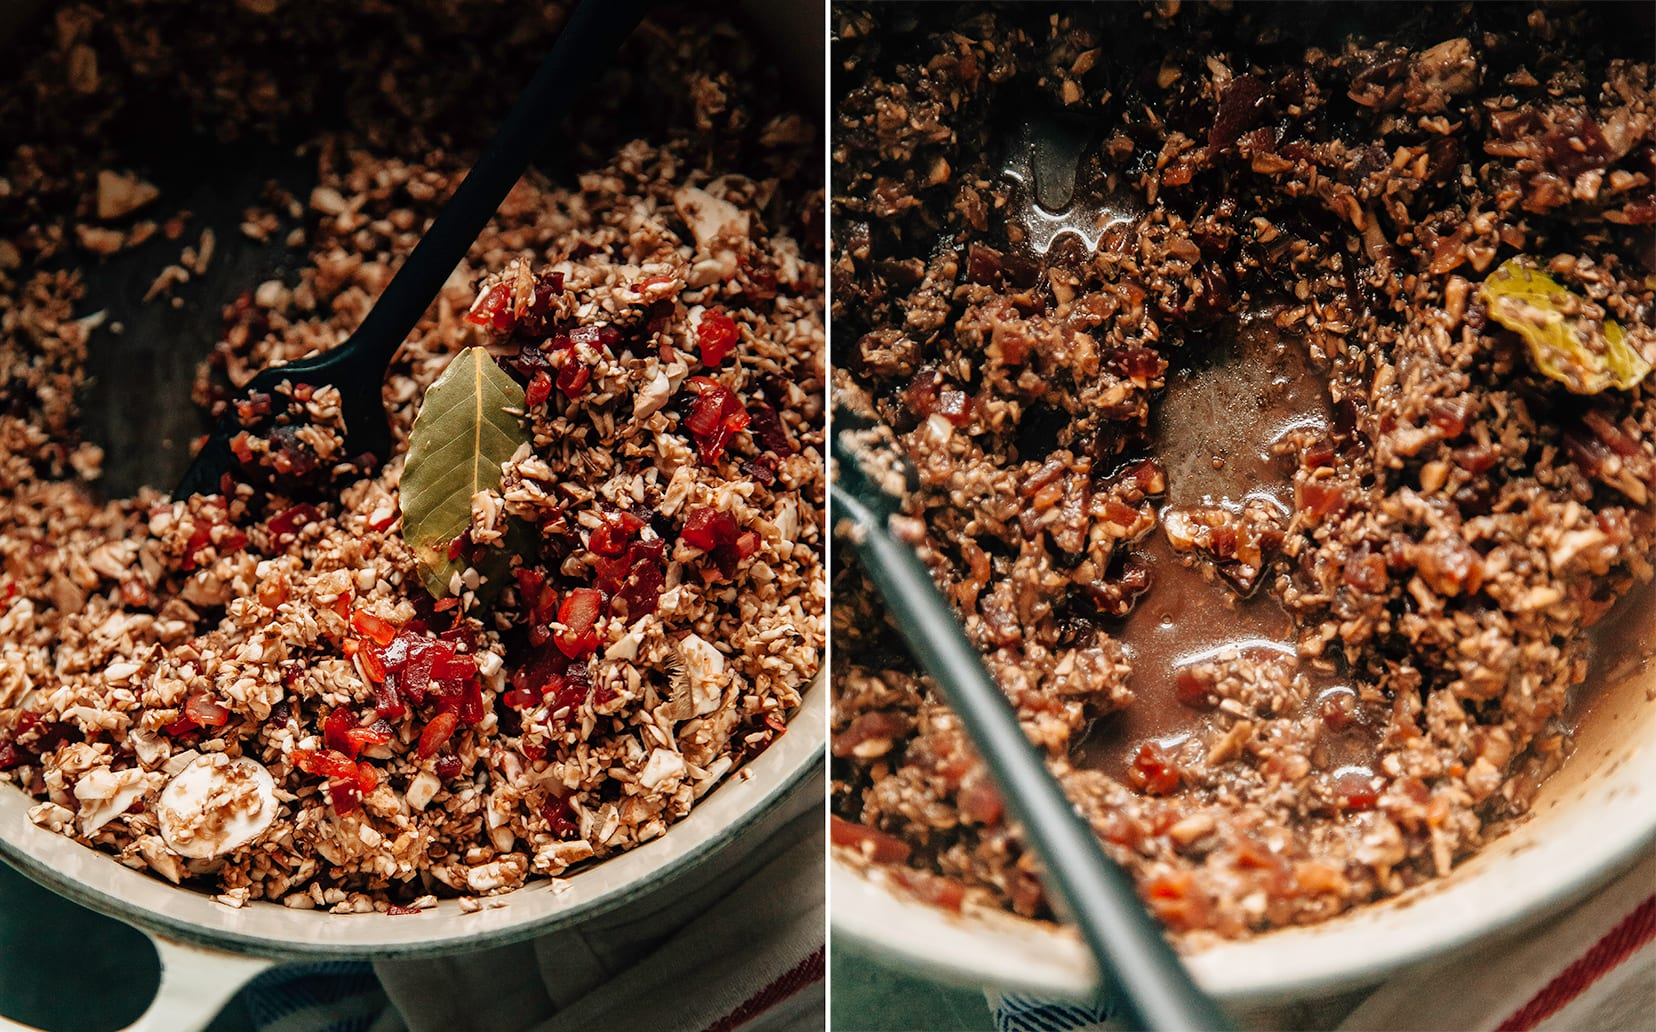 Two images show a finely chopped mushroom mixture being cooked down in a pot.